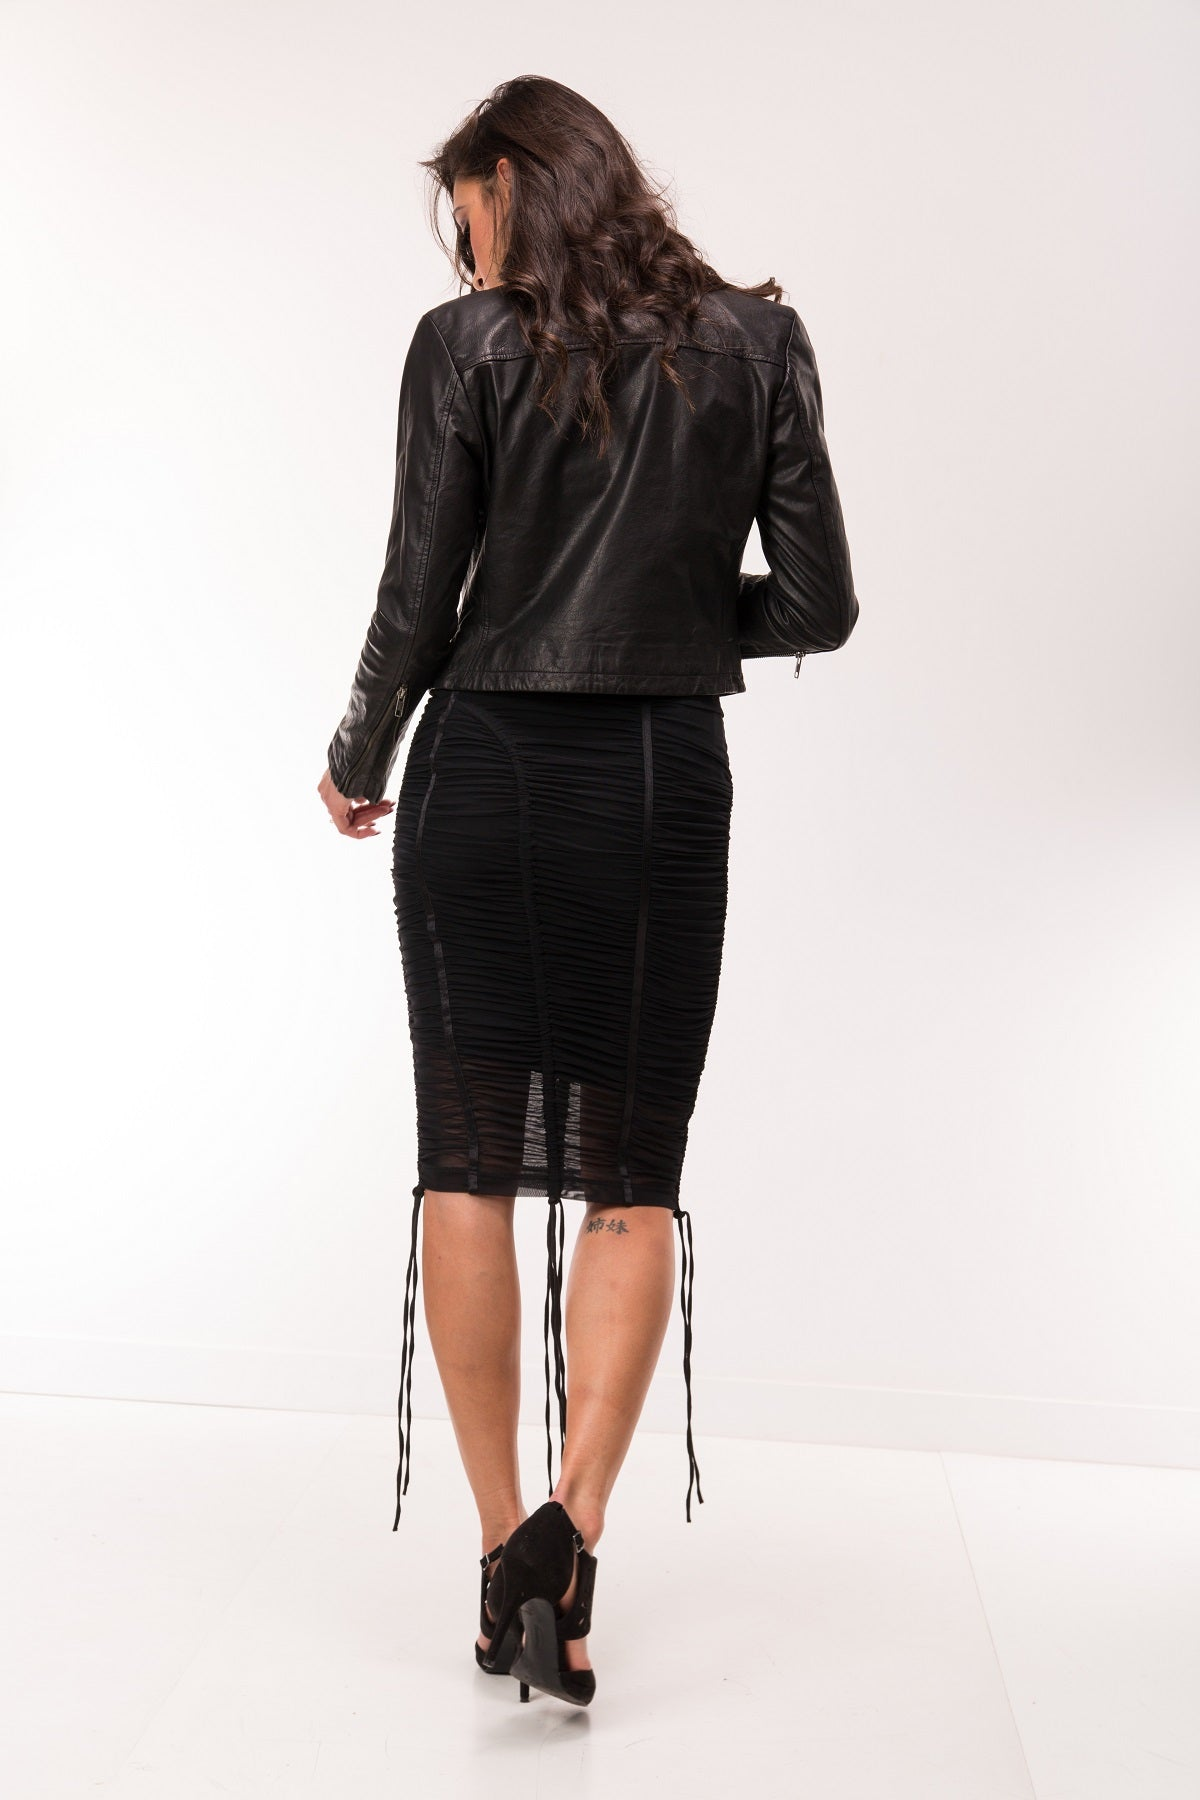 Crop Up Stud Out Black Leather Jacket